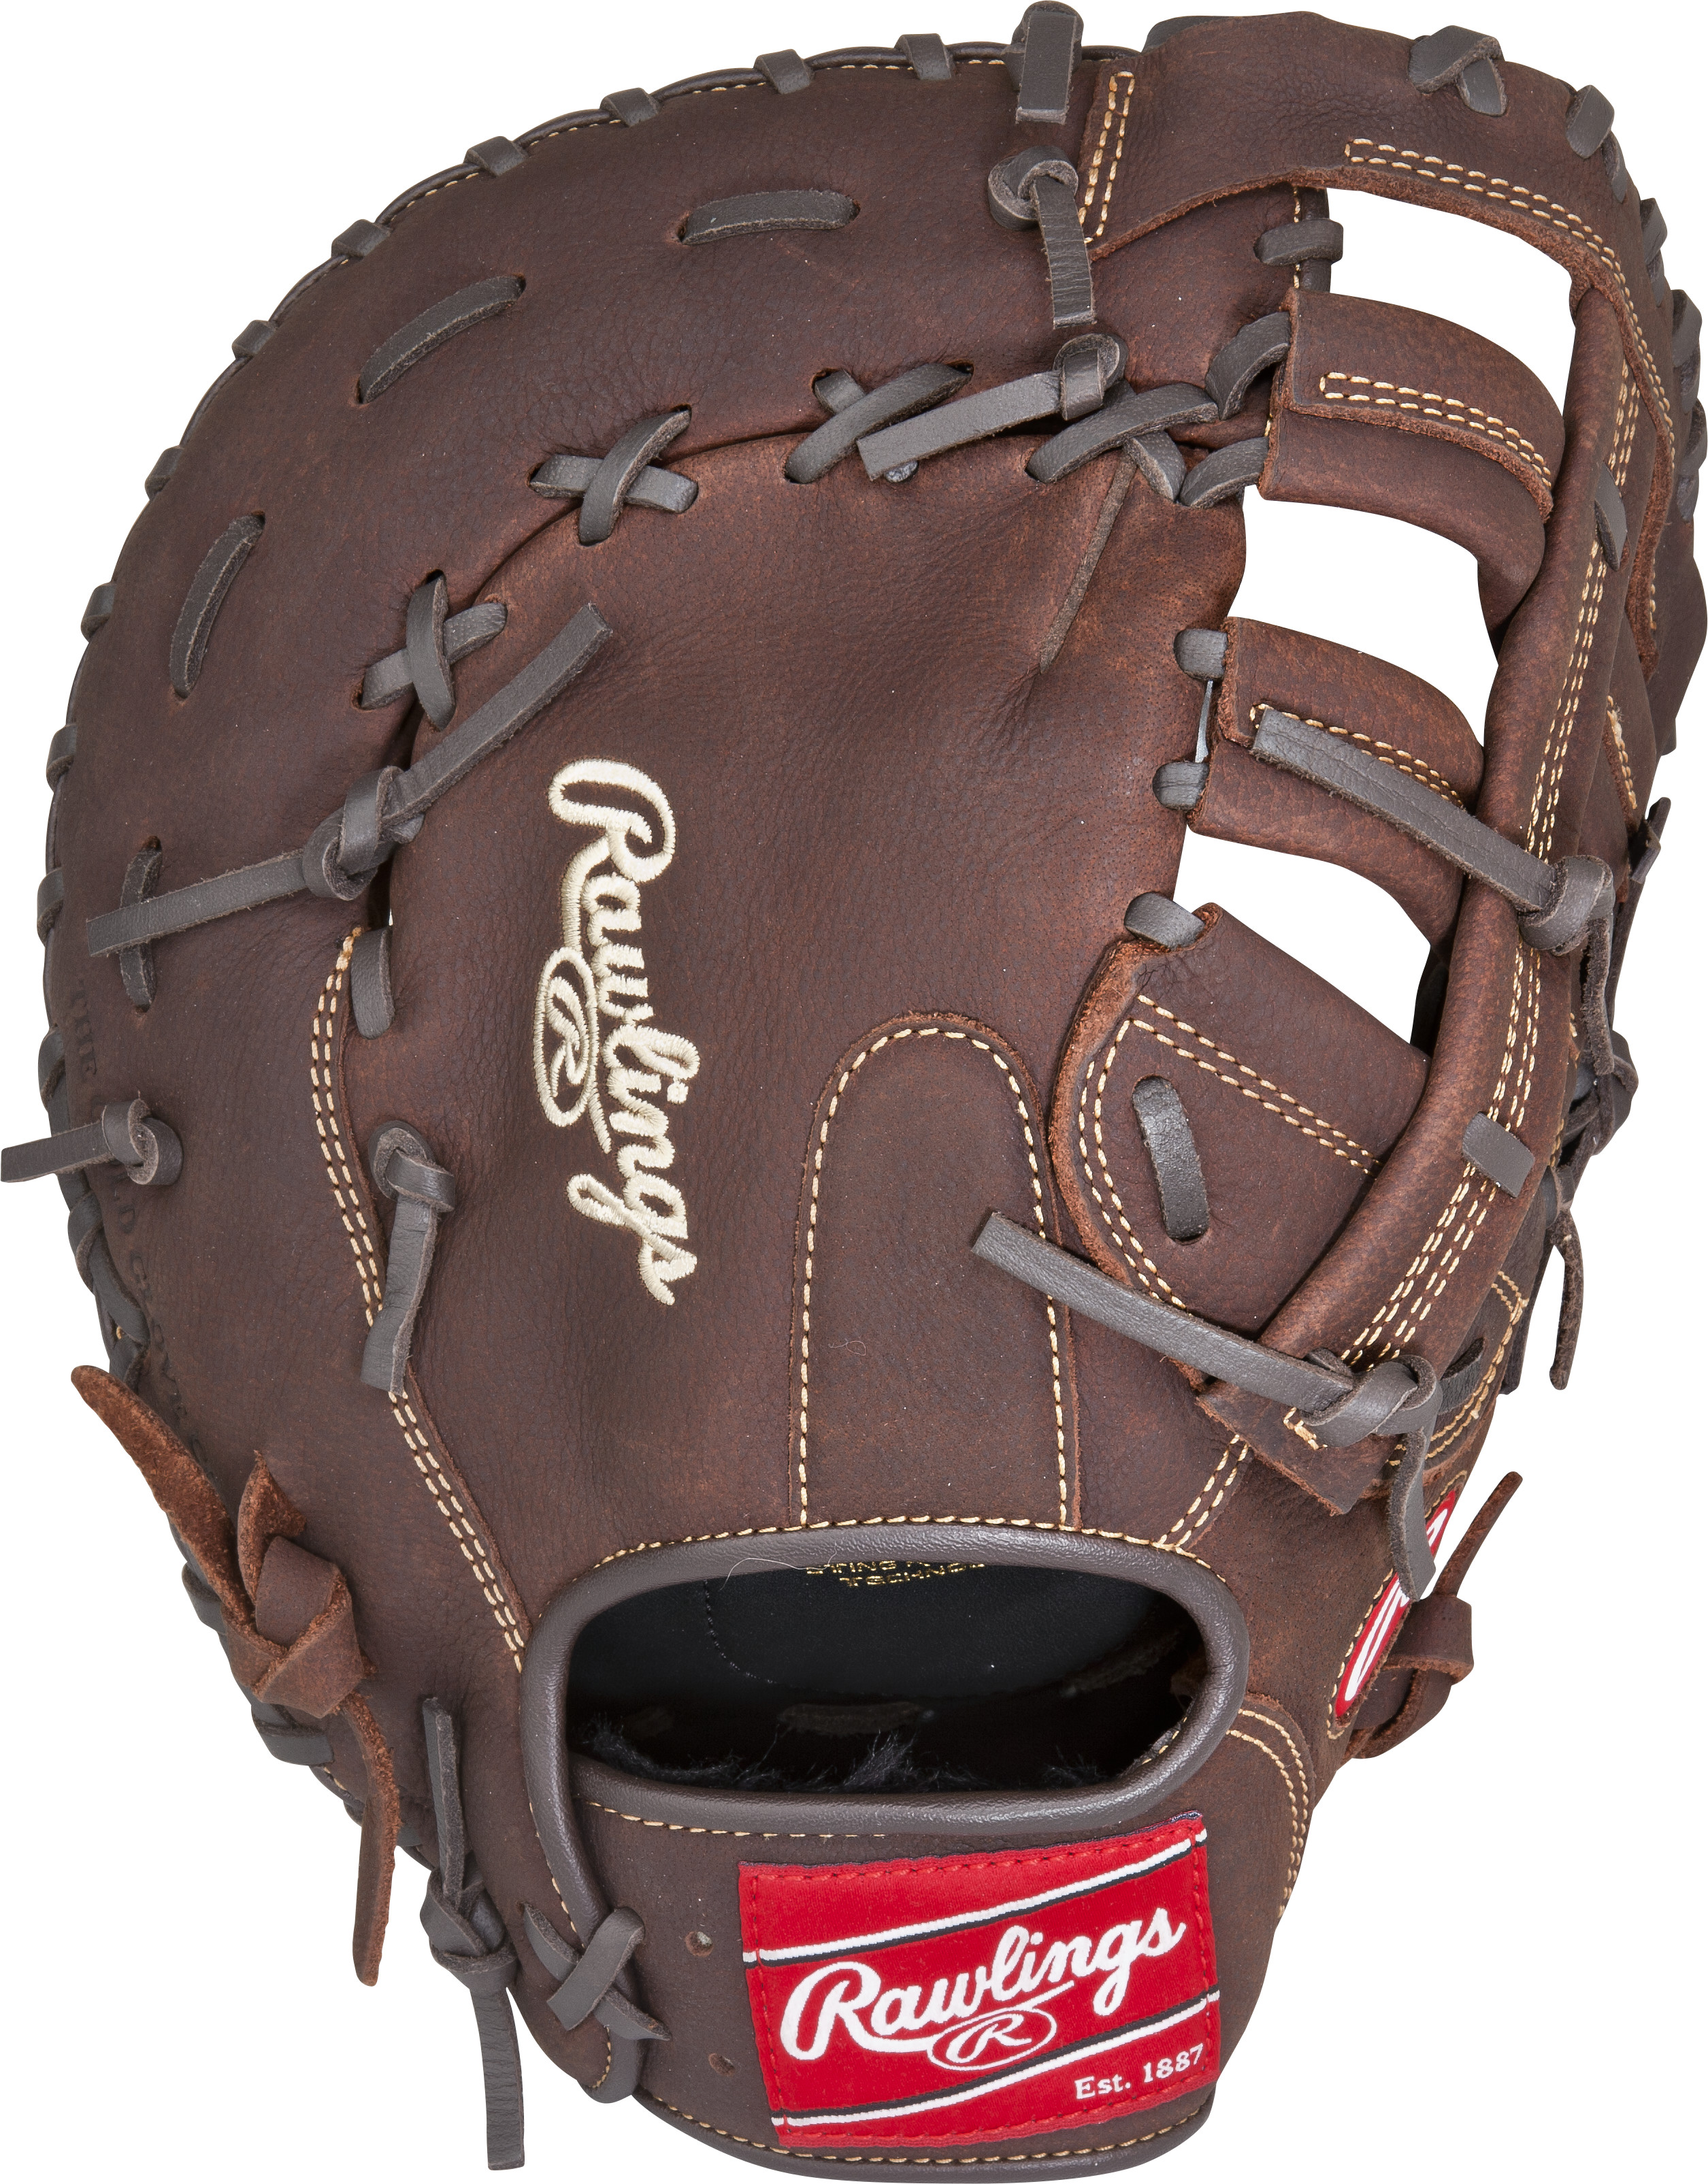 http://www.bestbatdeals.com/images/gloves/rawlings/PFBDCT_back.jpg